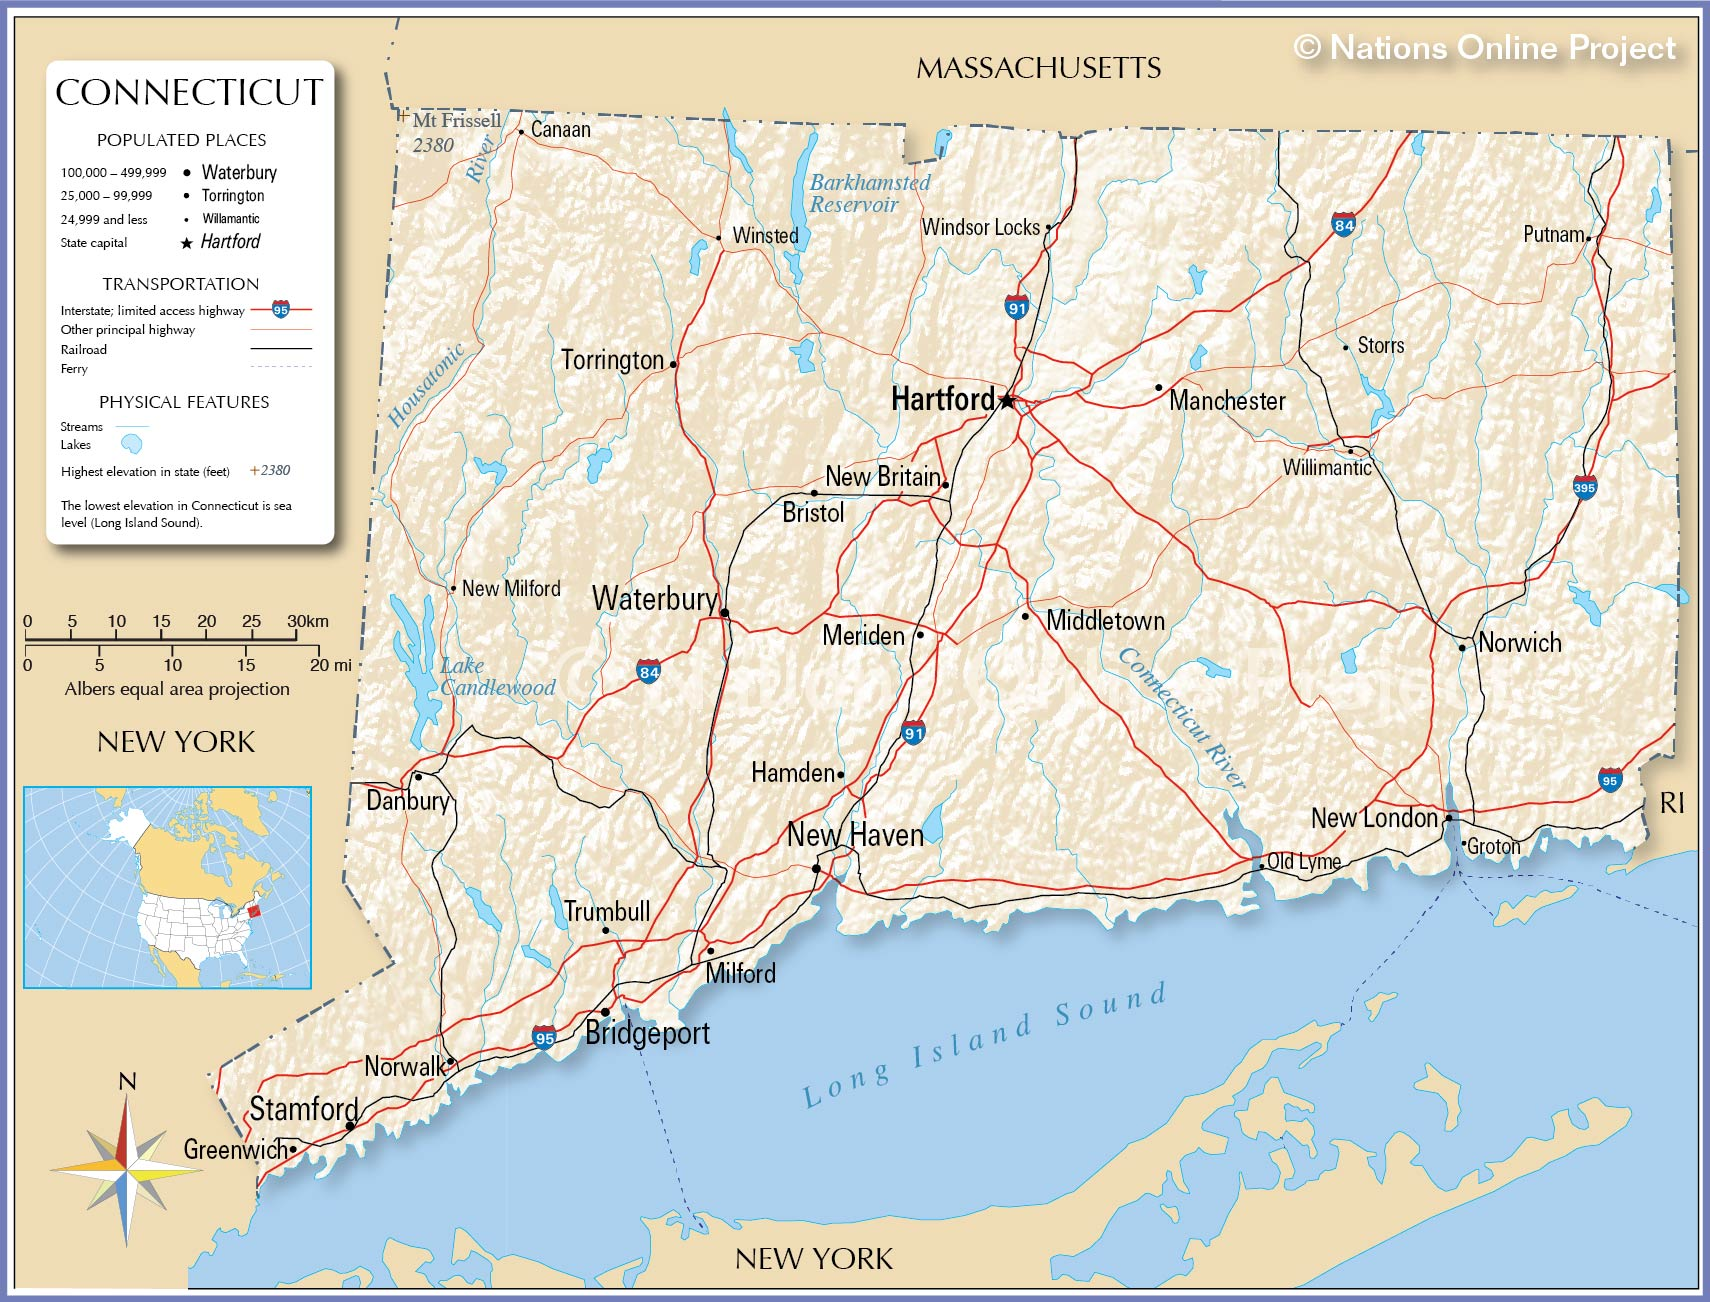 Reference Map Of Connecticut USA Nations Online Project - Connecticut on a us map